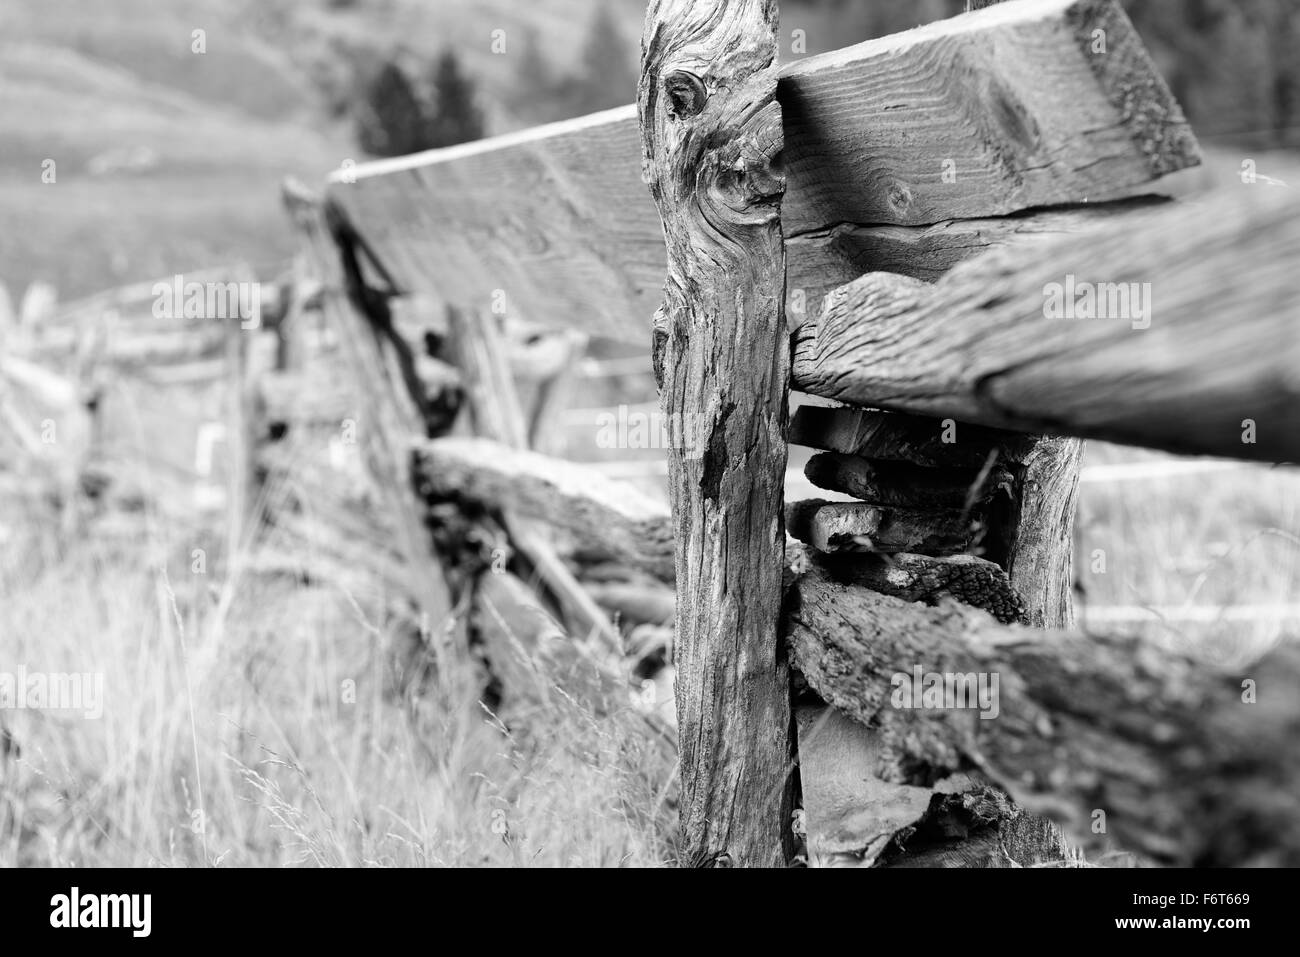 Holzzaun | wooden fence - Stock Image